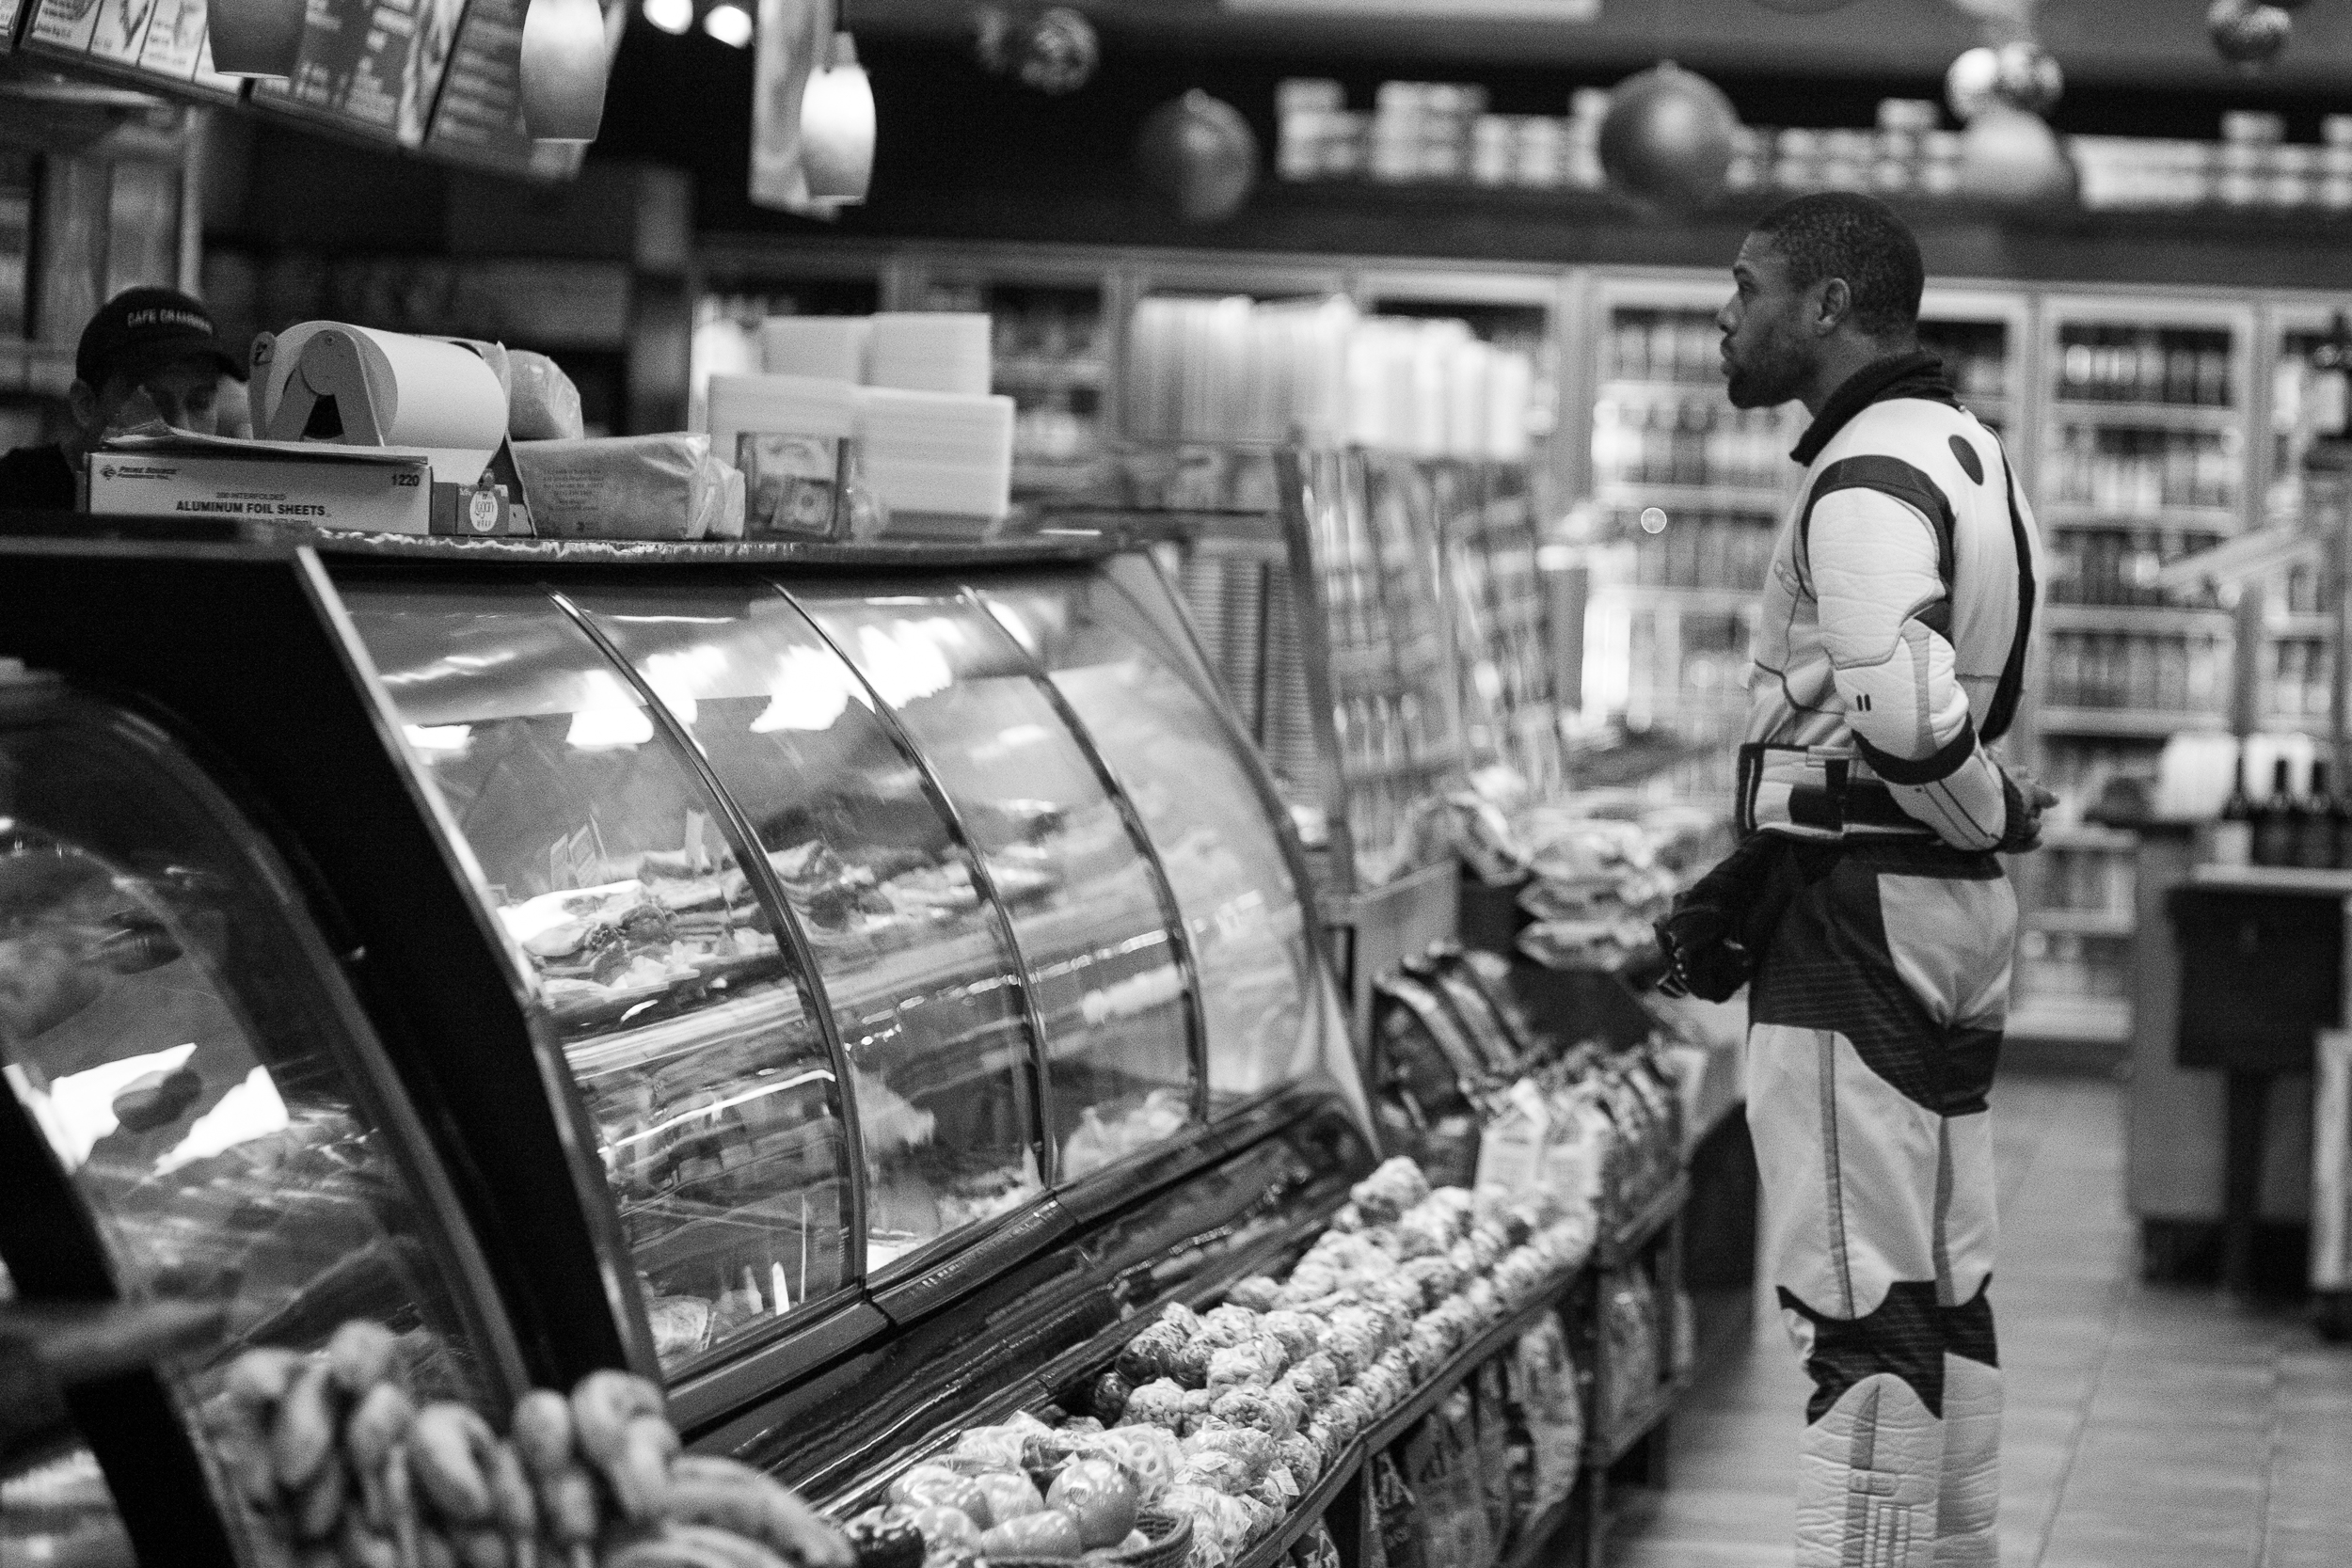 Stormtrooper's Have to Eat. This man was dressed in a Stormtrooper costume, but had stopped at a deli to get a snack. Leica M10 with 90mm Summicron f/2.